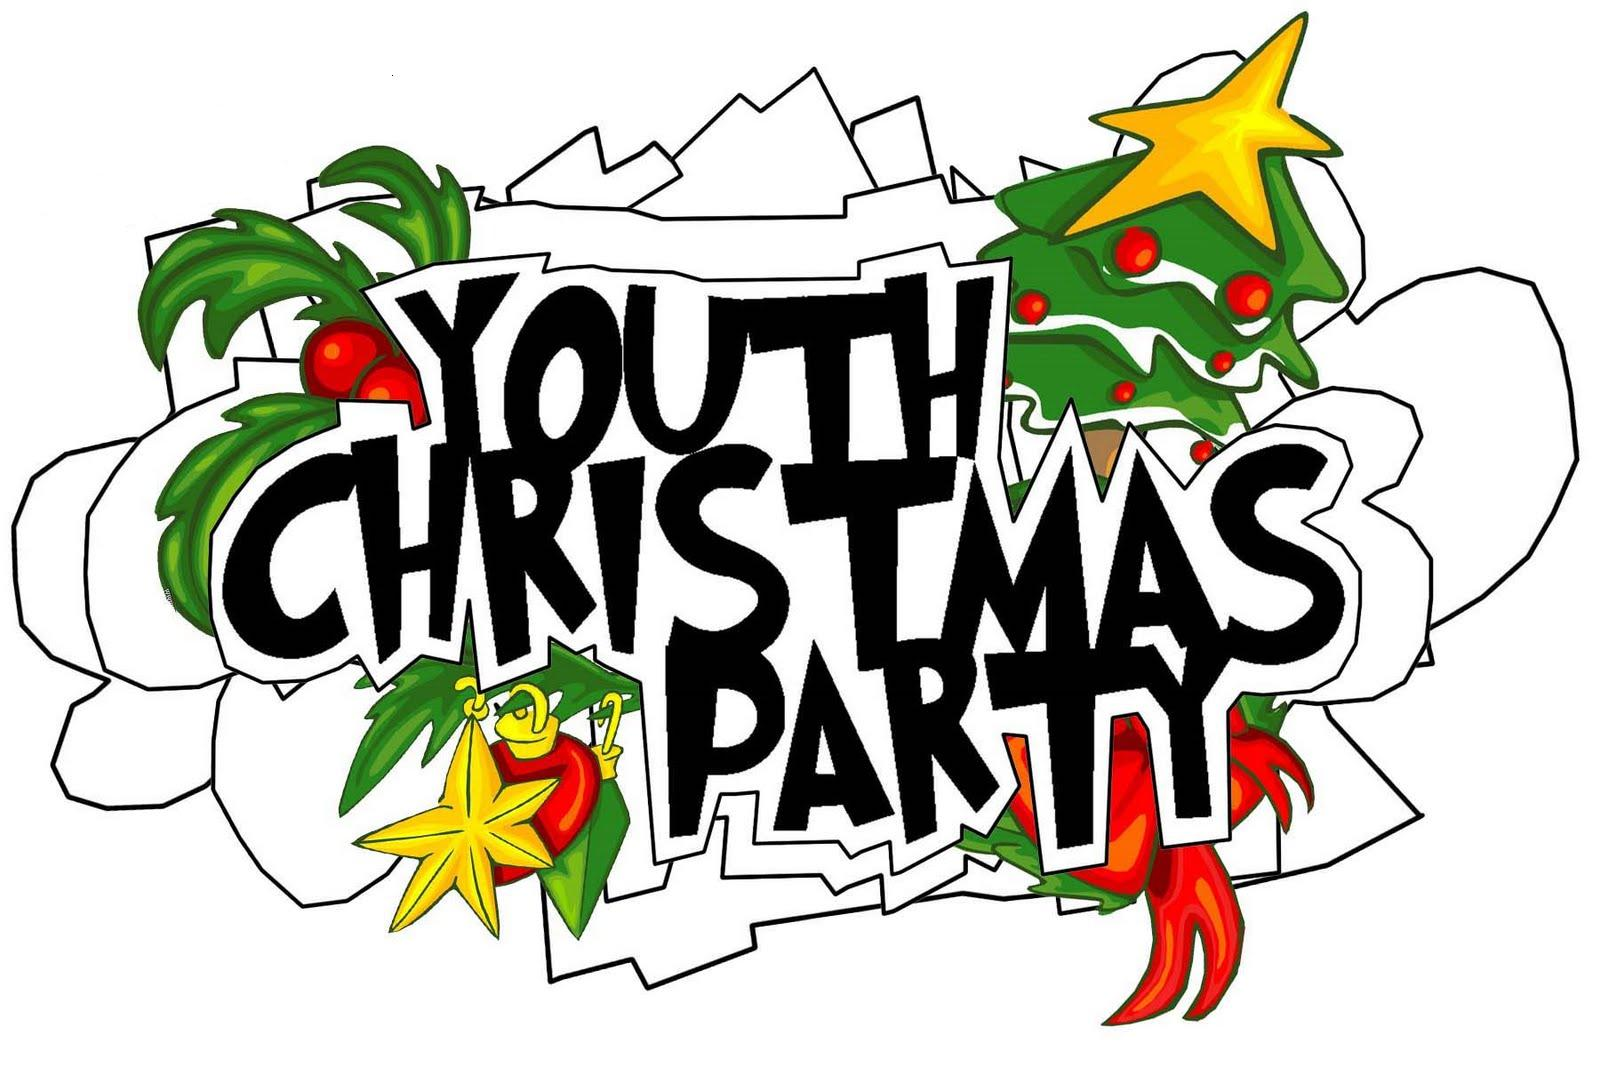 Youth christmas party clipart